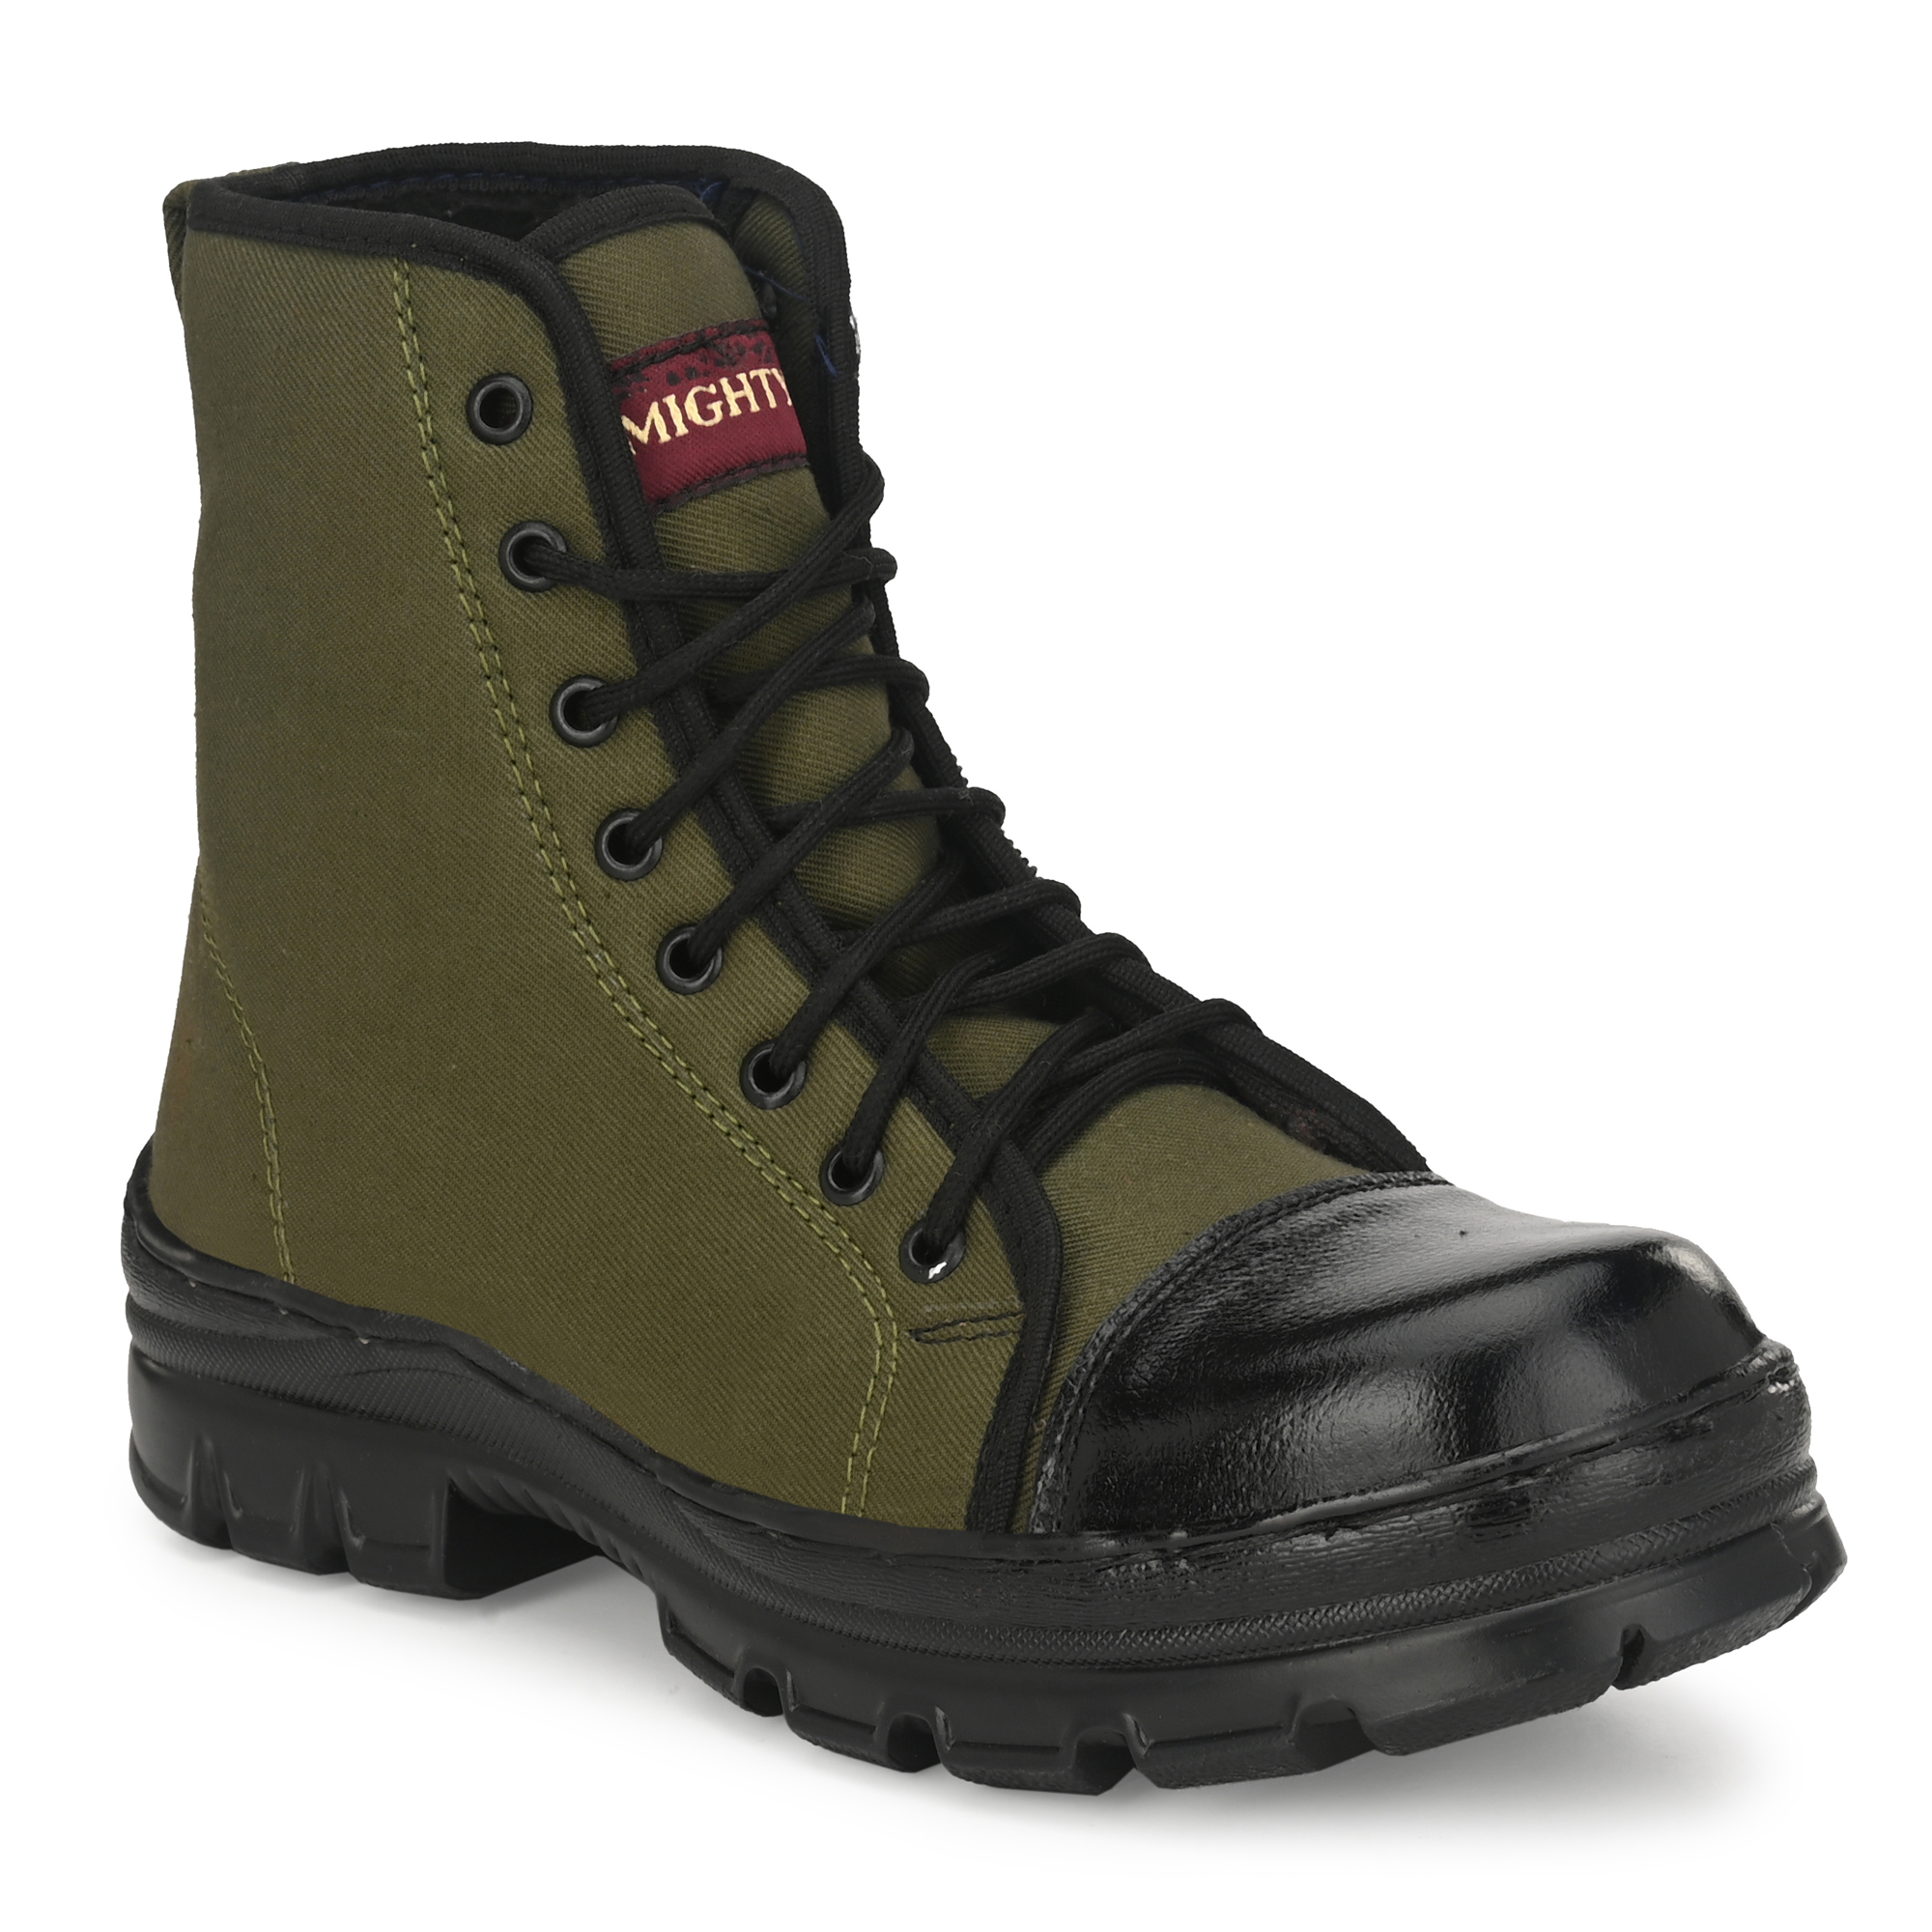 Almighty Green Army Jungle Men's Boot FRE01GREE (GREEN, 6-11, 8 PAIR)